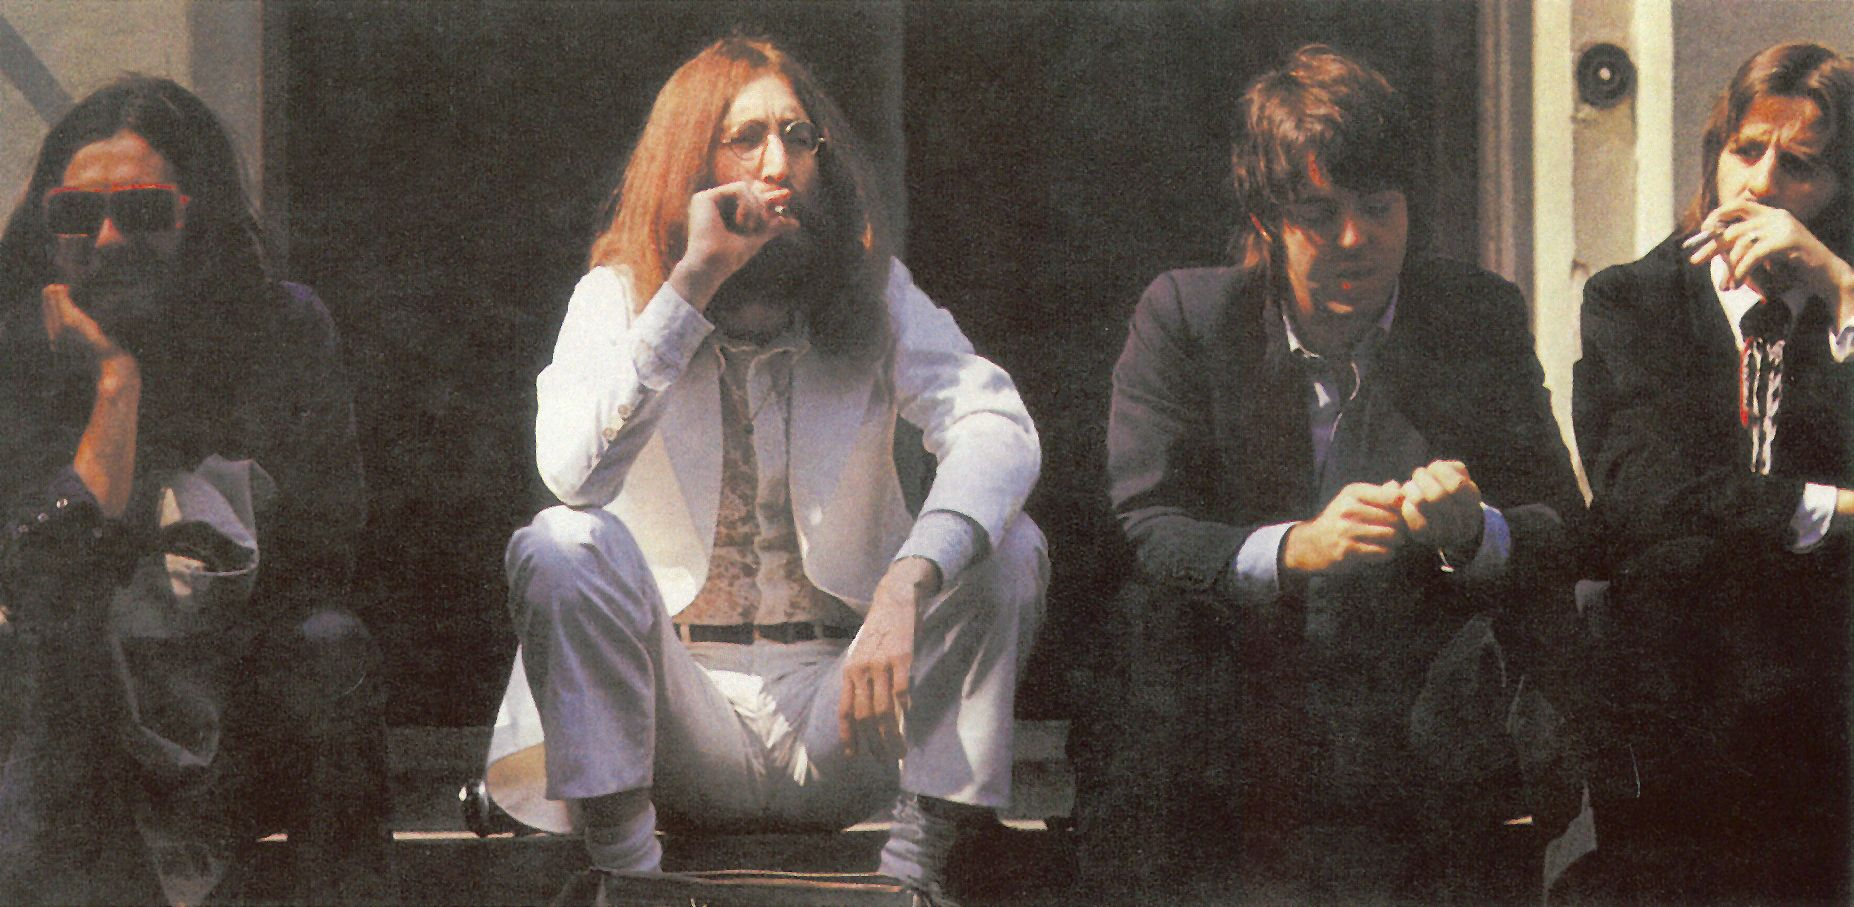 The Beatles For Abbey Road Album 1969 John Lennon Was Wearing The Famous White Suit Of Ted Lapidus The Beatles Beatles Abbey Road John Lennon